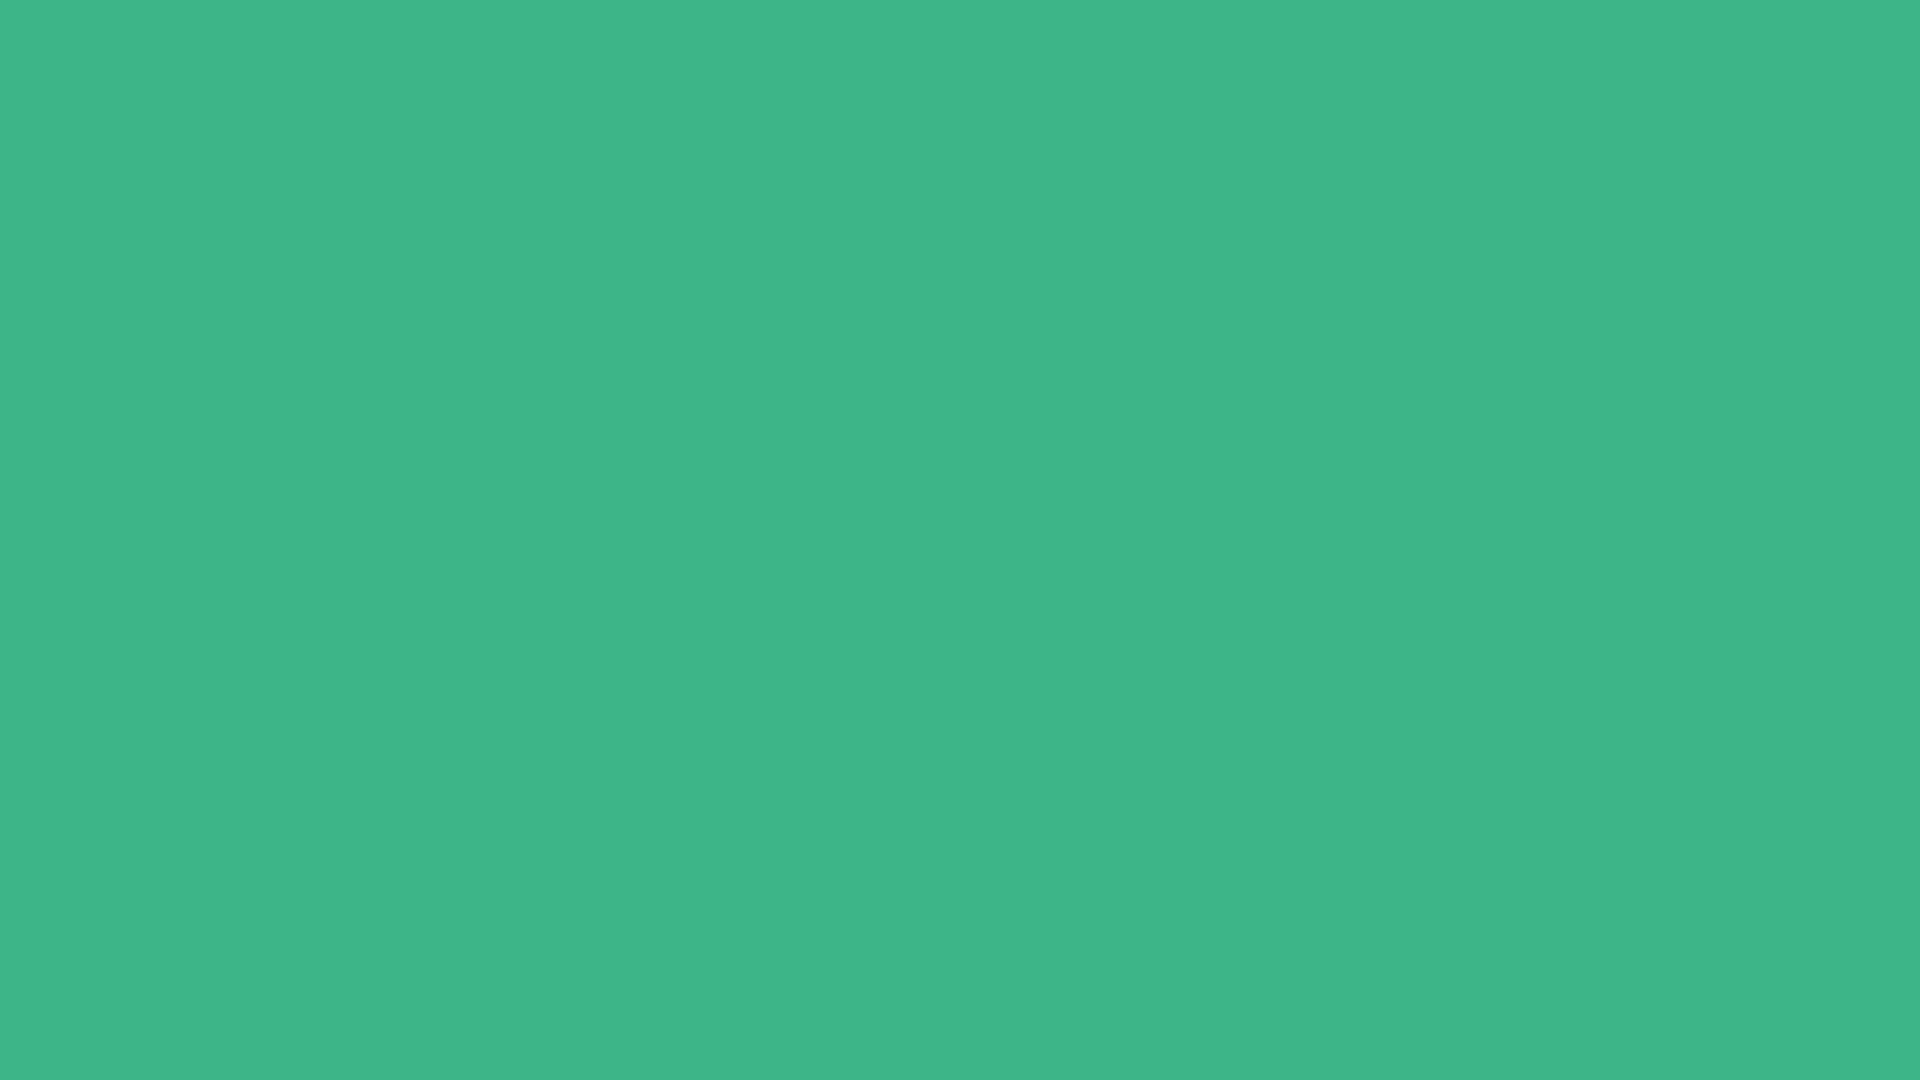 1920x1080 Mint Solid Color Background